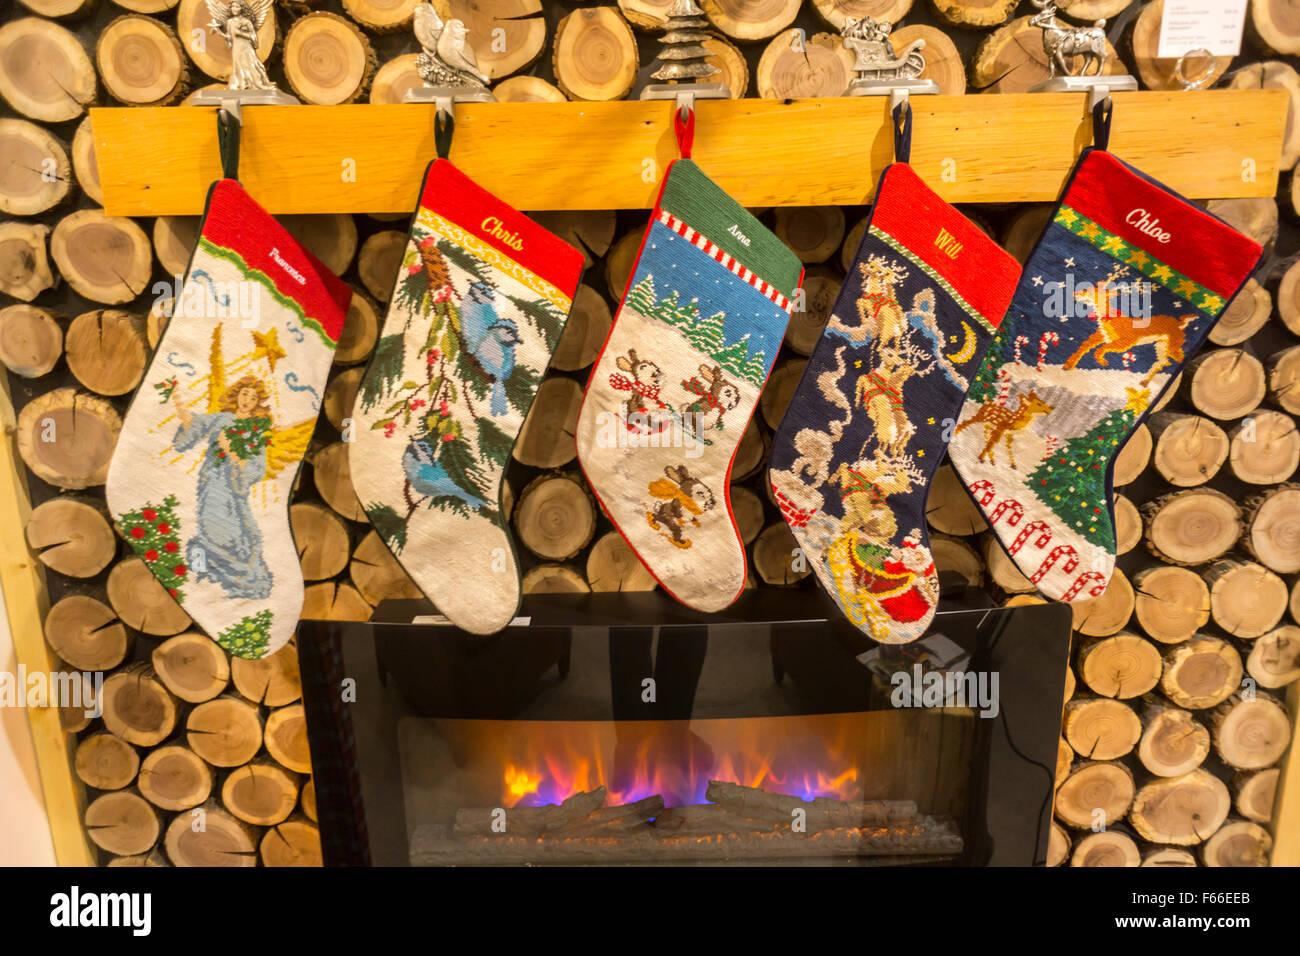 Lands End Christmas Stockings.Christmas Stockings On Display In The Lands End Holiday Pop